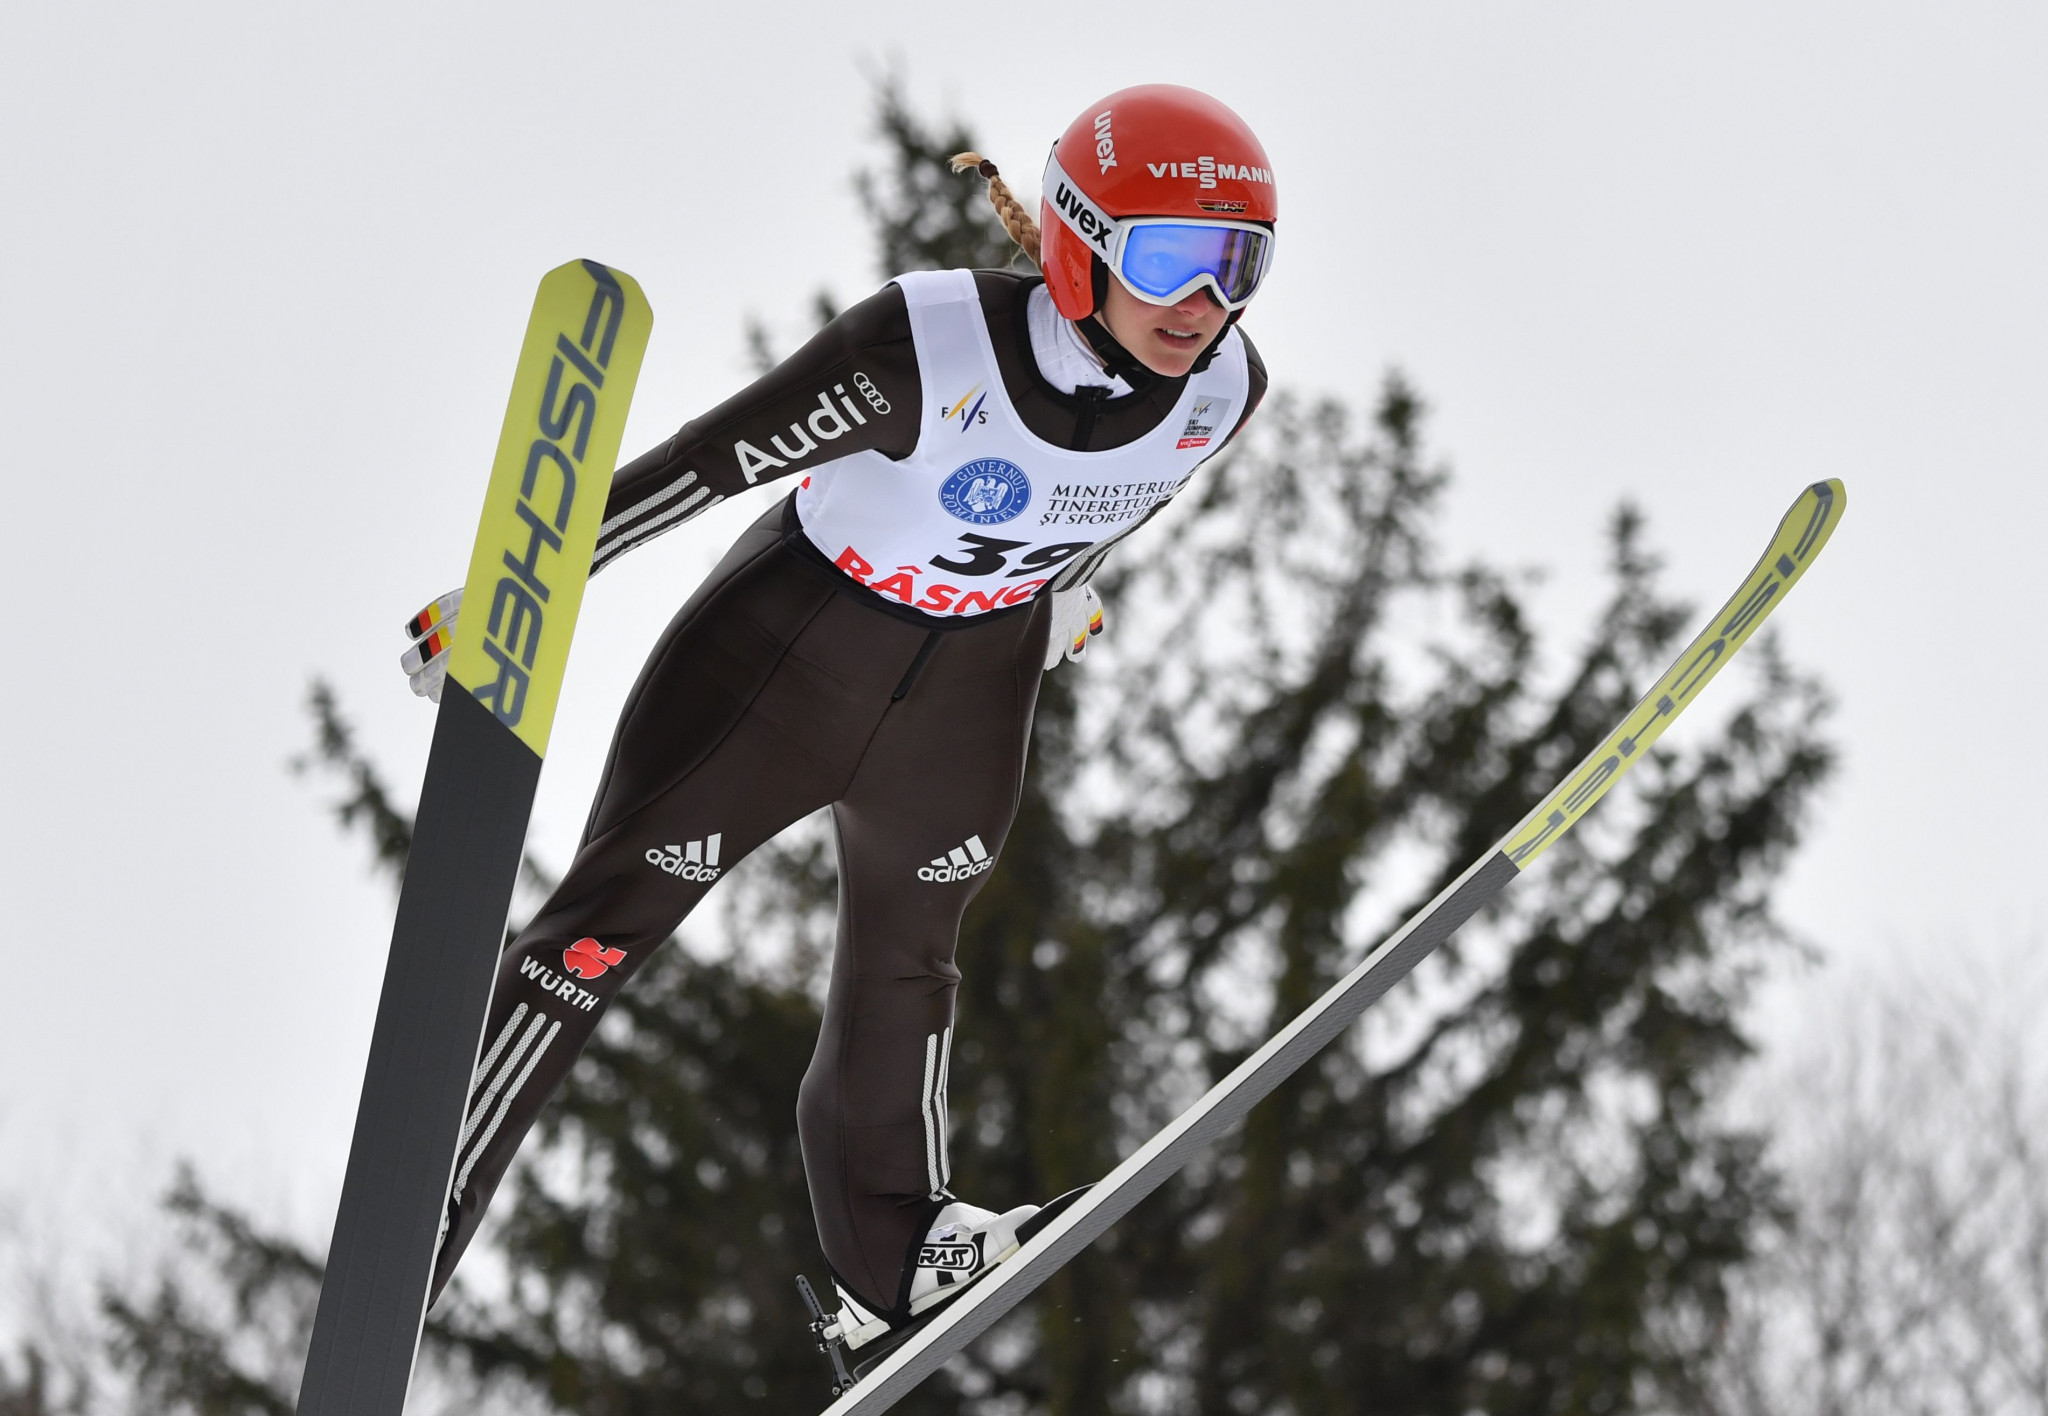 Germany's Katharina Althaus sealed her third win of the season ©Getty Images